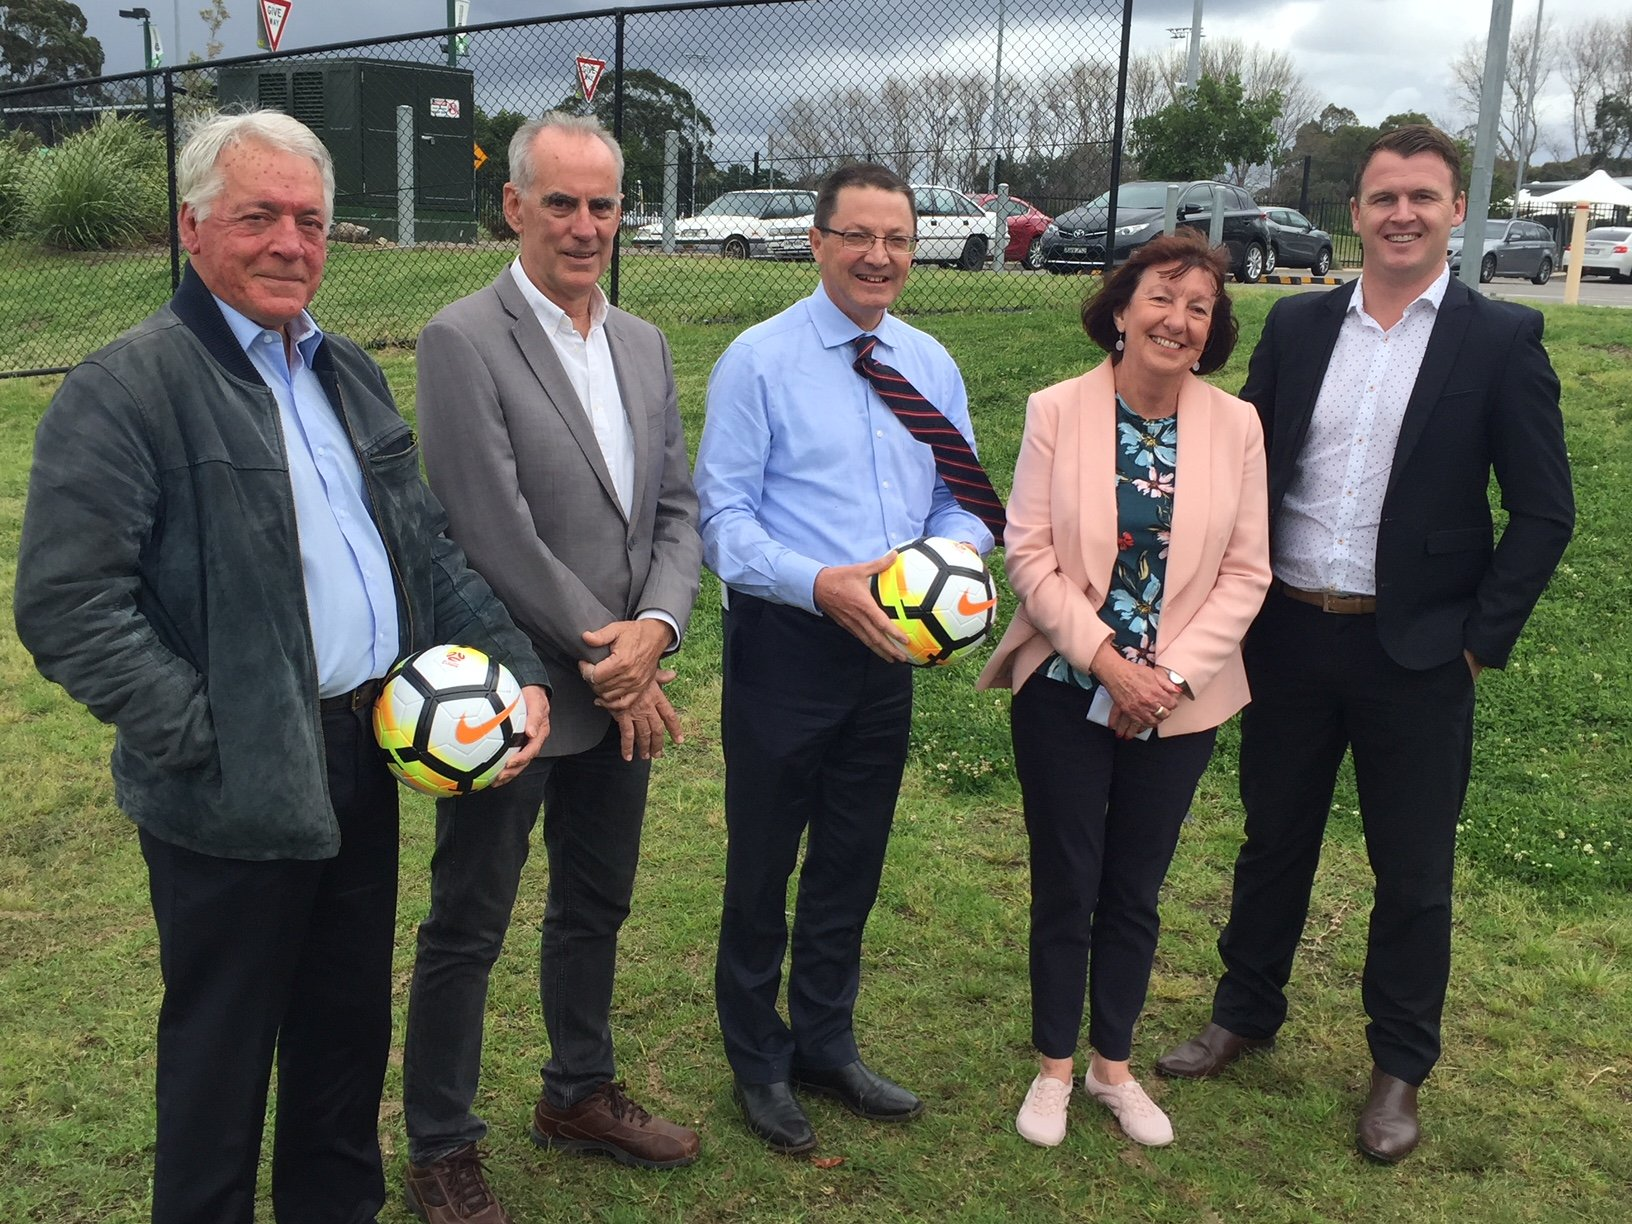 Fantastic news today for Northern NSW Football. We've secured $2.25m from the State Government to significantly expand the Lake Macquarie Regional Football Facility at Speers Point.